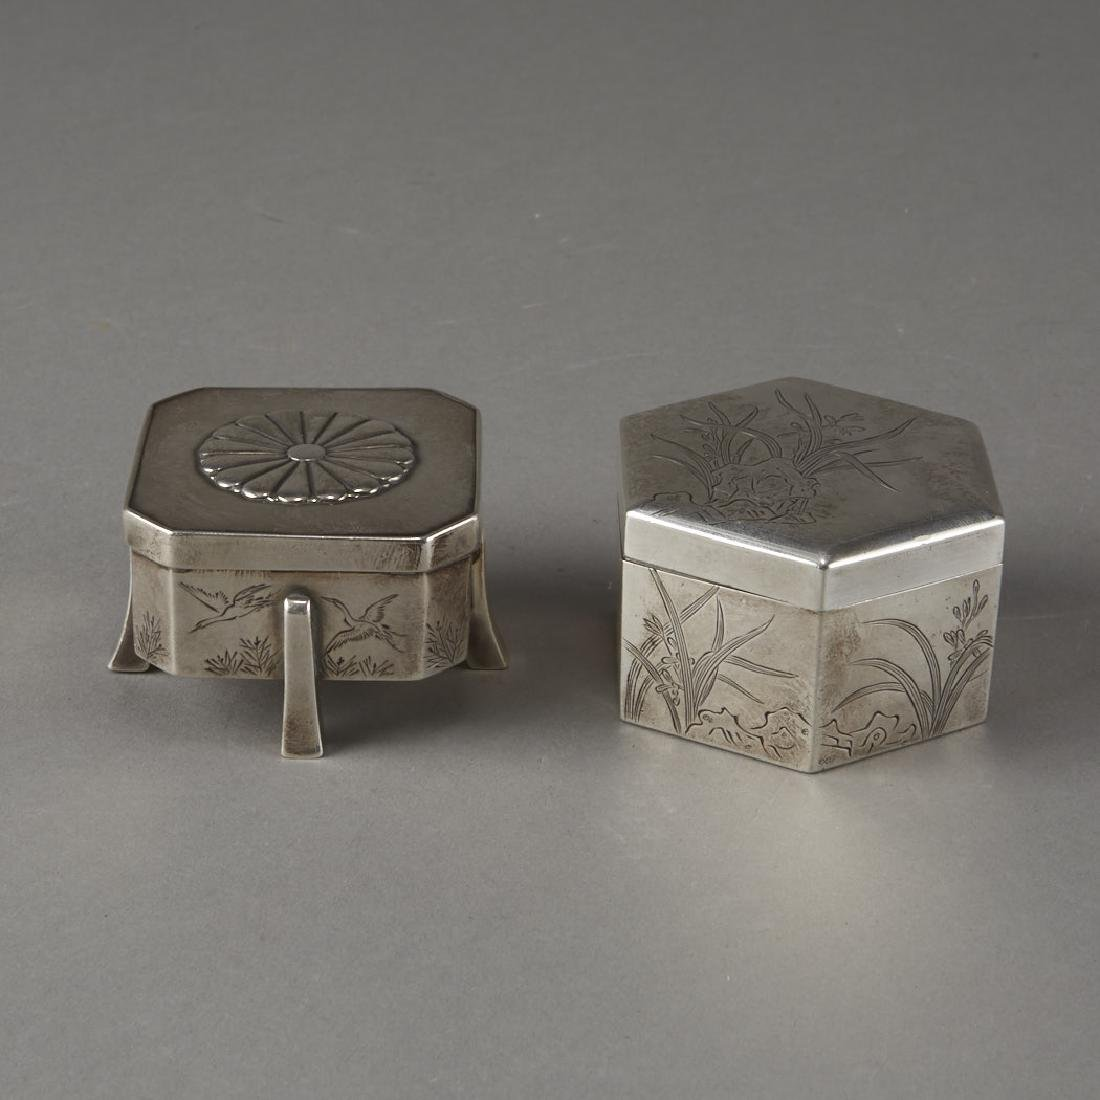 Japanese 20th C. Silver Boxes Decoration - 5